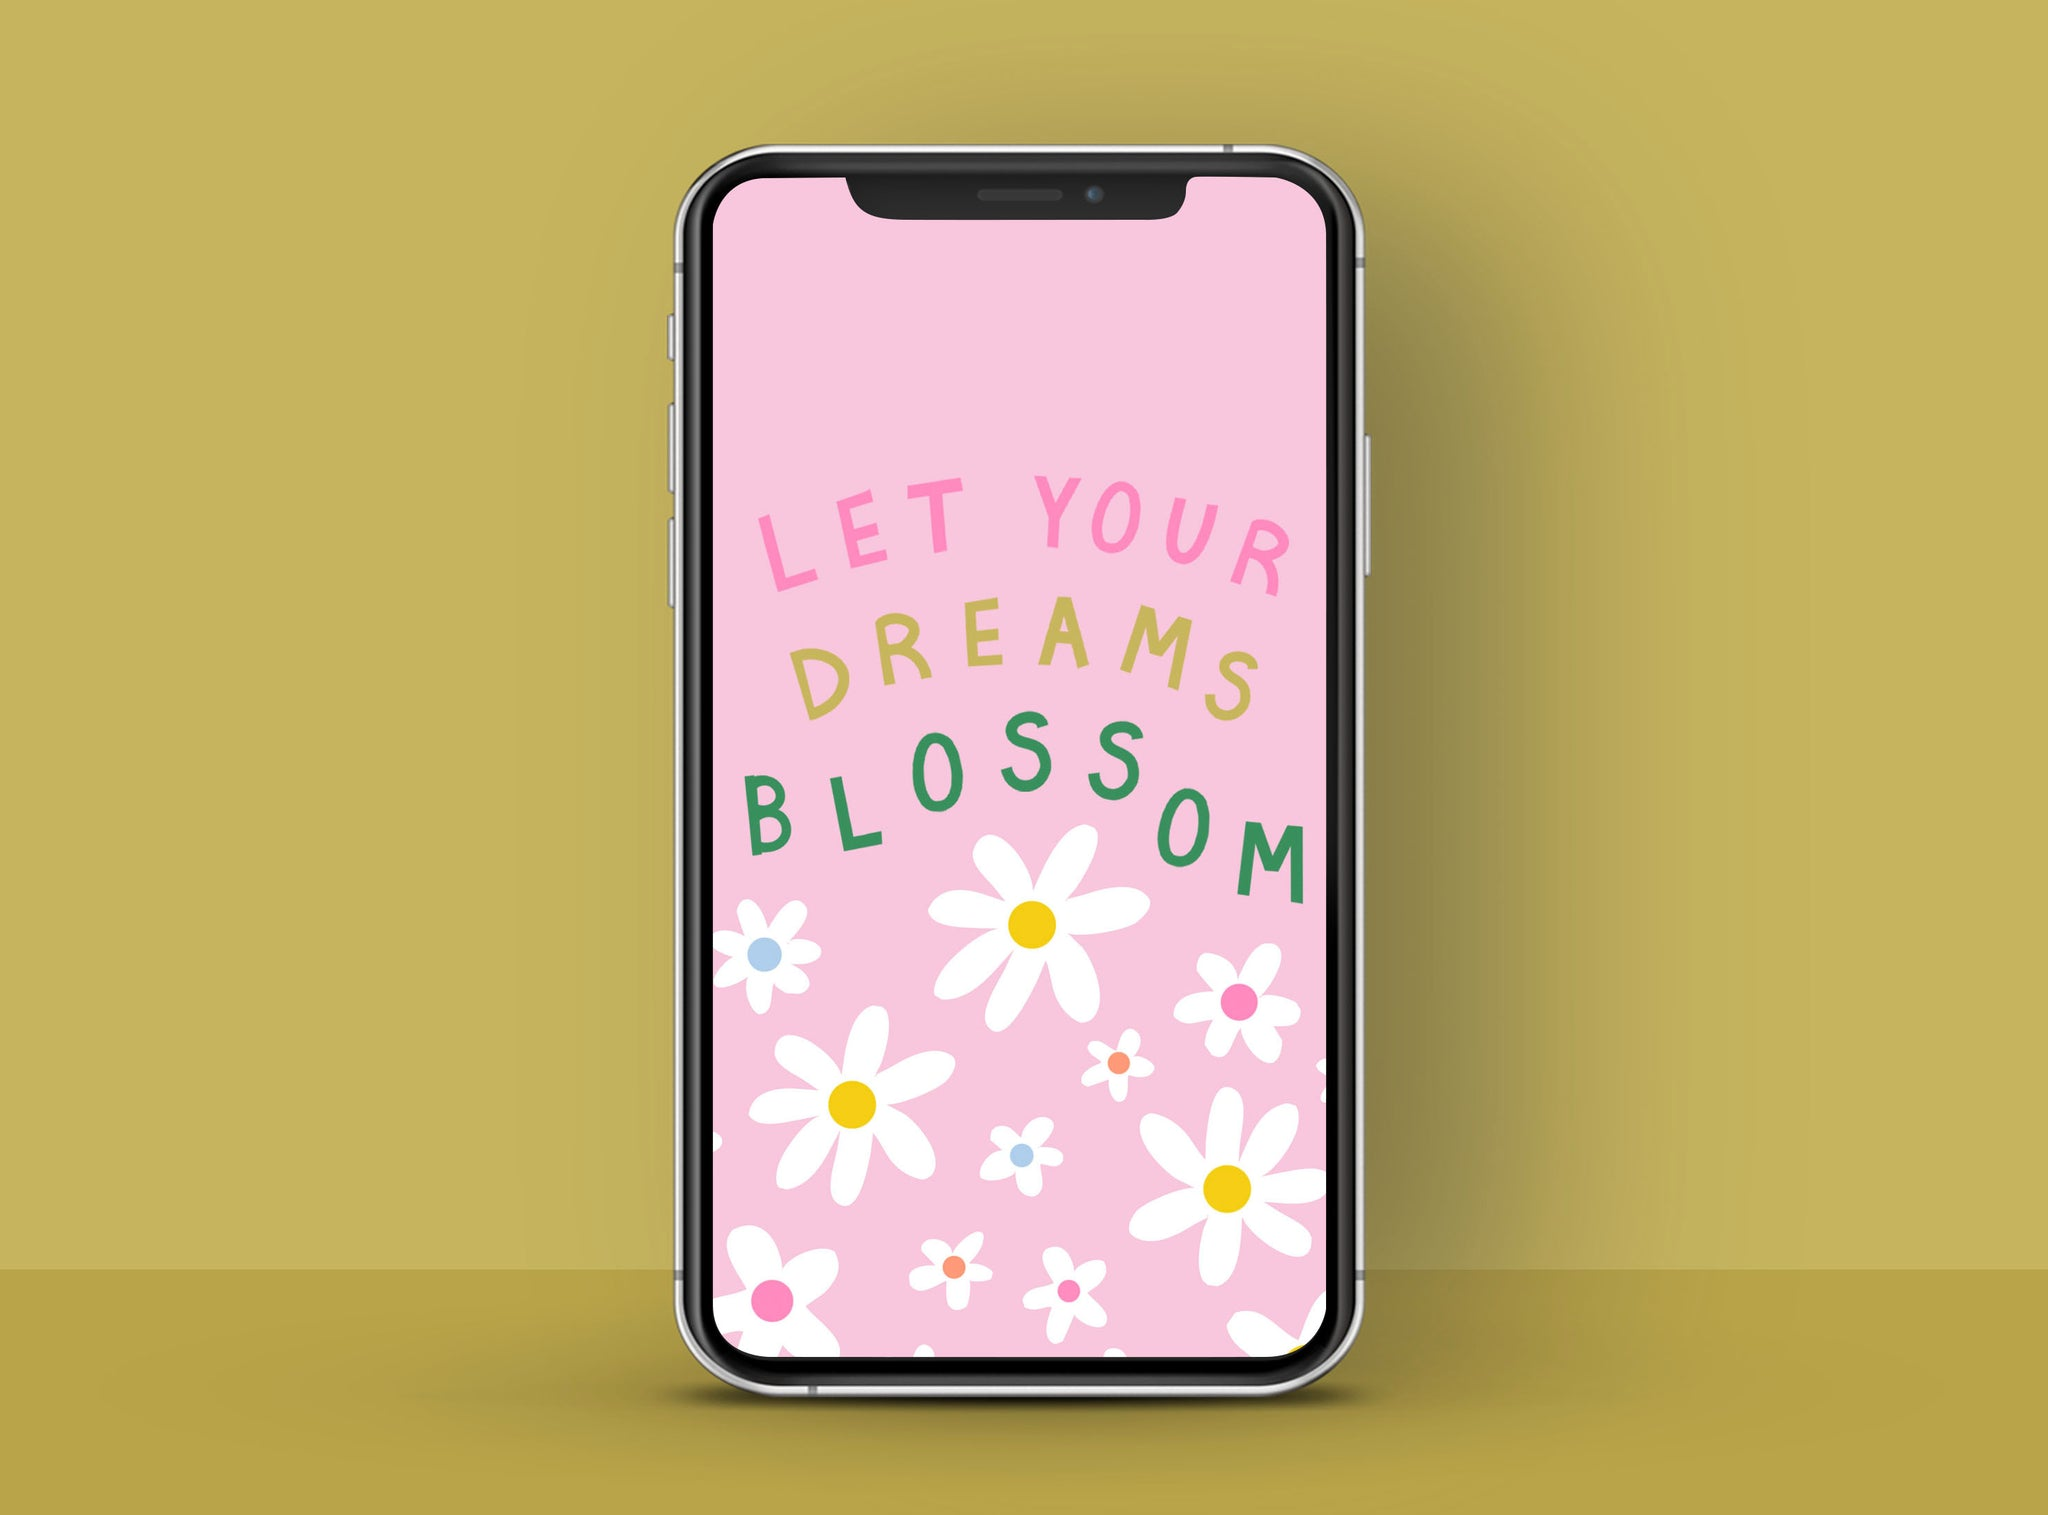 Let Your Dreams Blossom Free HD Phone Wallpaper Download   Raspberry Blossom